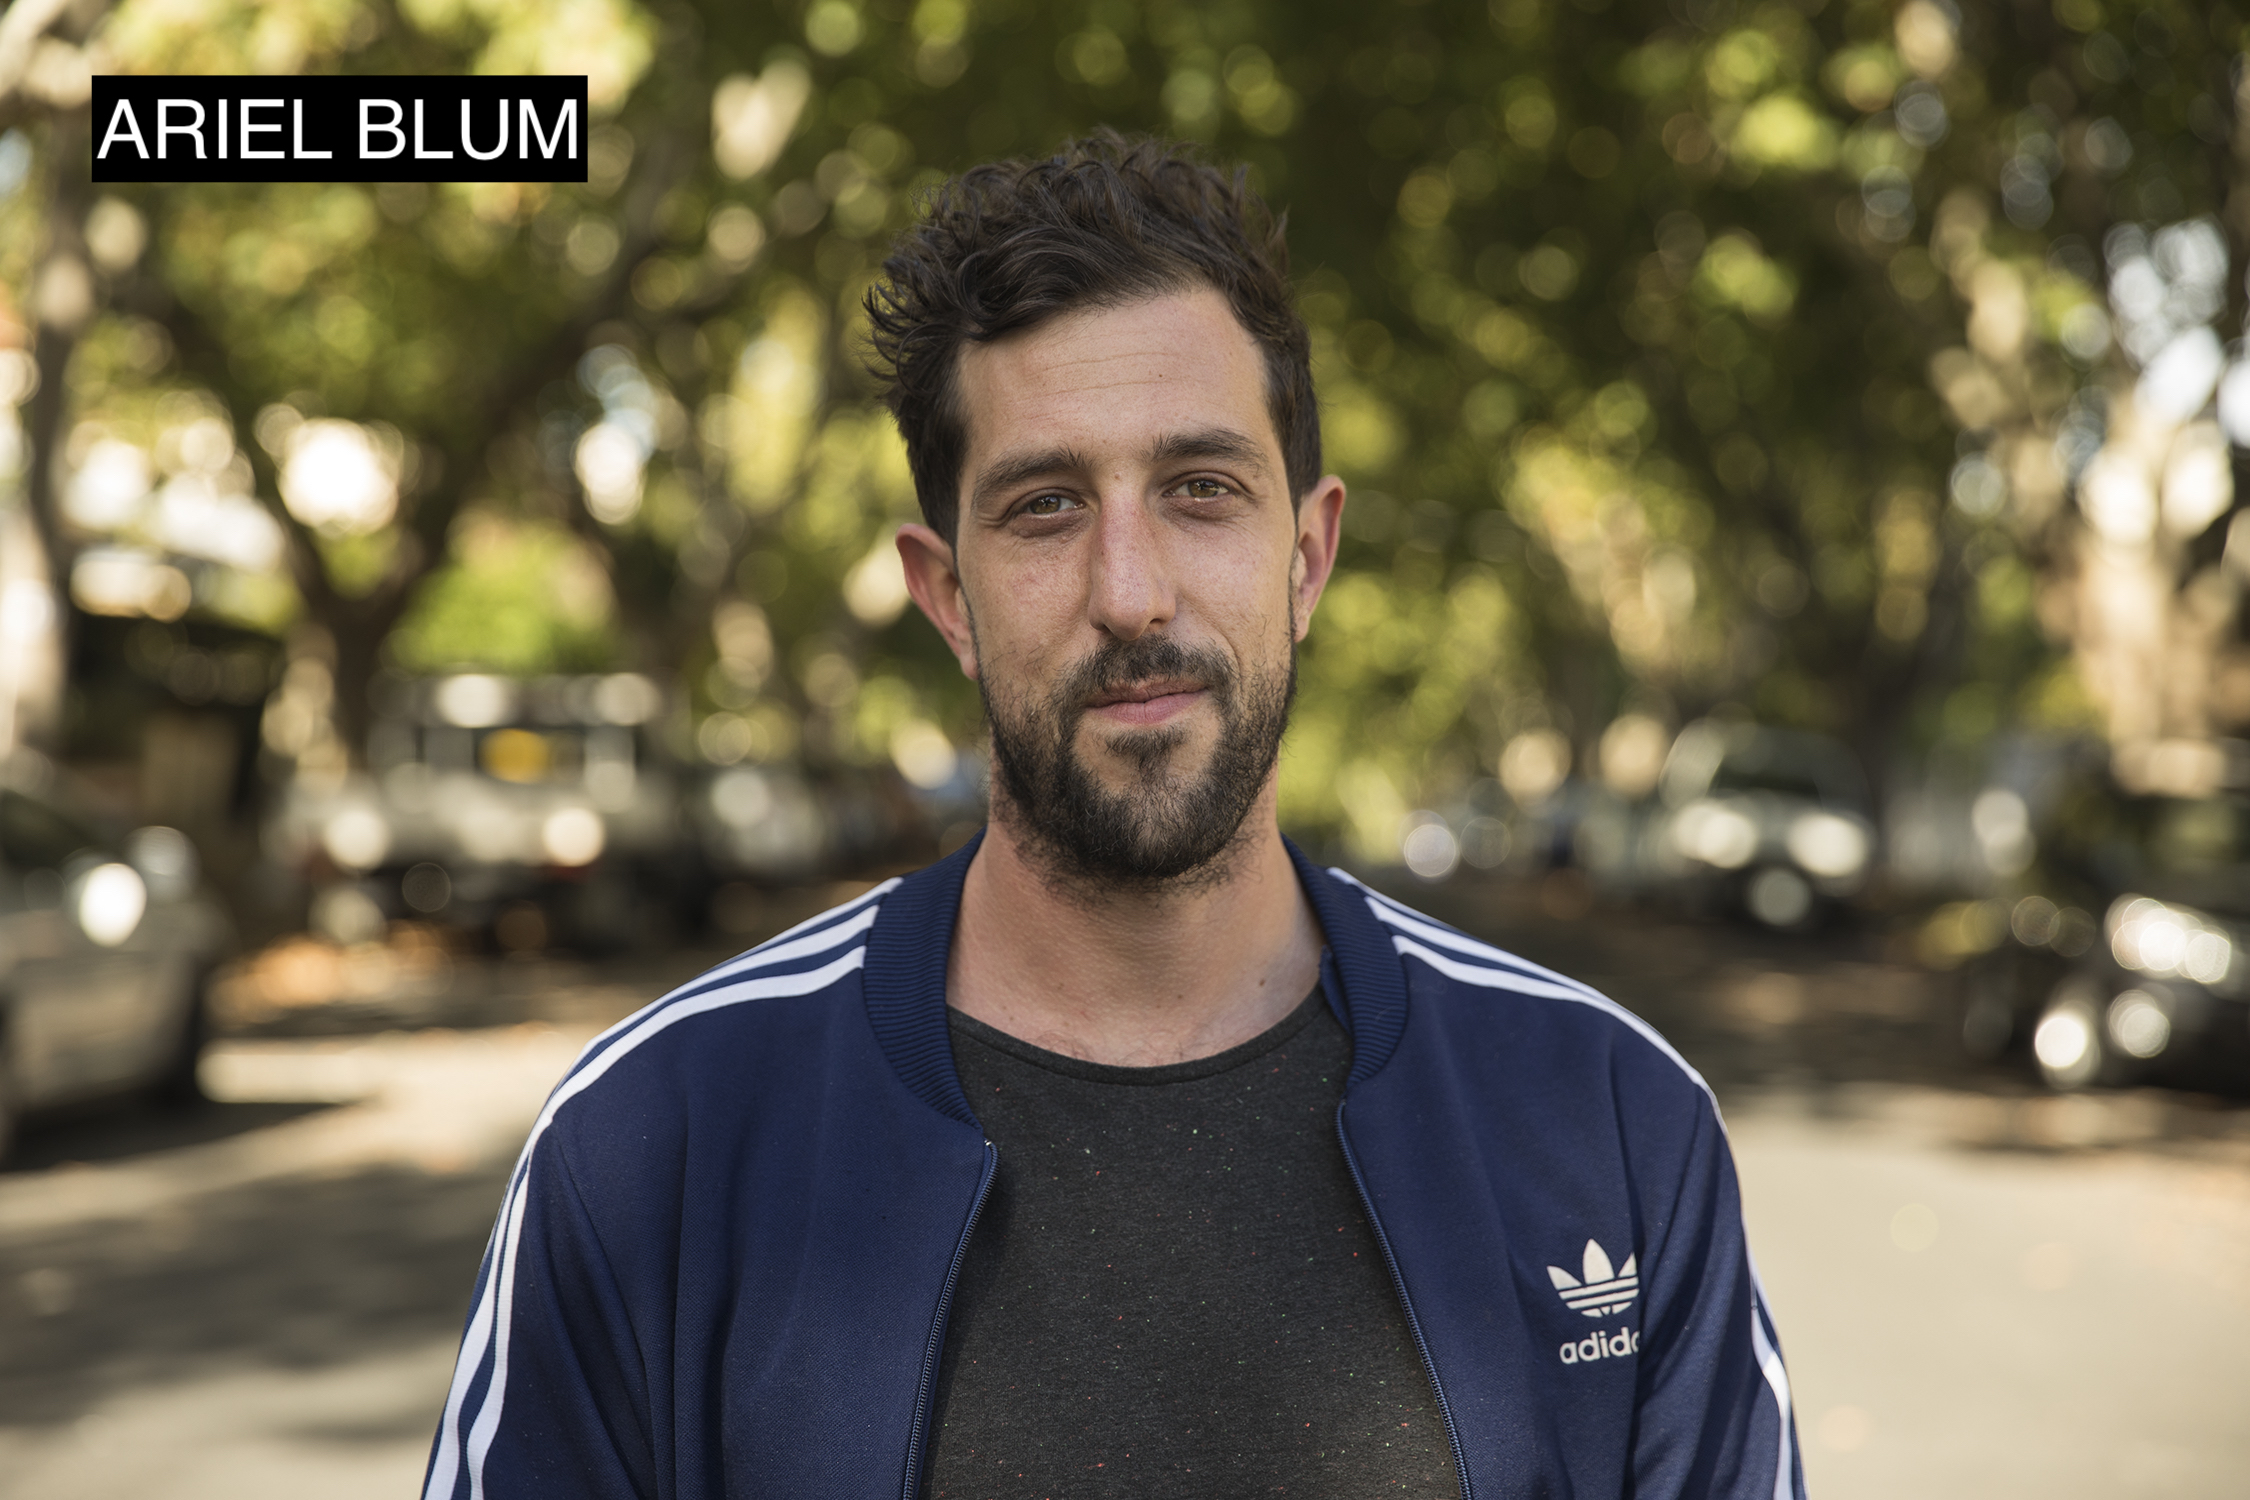 Ariel Blum is a Melbourne-based producer, songwriter and multi-instrumentalist who has worked with artists including Sydney R'nB artist Lara Andallo, Perth artist Anna O, Melbourne artists Daniel Elia, Gordon Koang, Cash For Gold, Sahida Apsara andThe Fabric (fronted by Angie McMahon) and Florence and The Machine.  Ariel also composes for film and TV with his music having recently featured in campaigns for Samsung, Sukin and Corona.  As a songwriter and performer, Ariel is one part of trip-hop duo St.Ives alongside Anna O'Neil.  Making music and giving artists a platform to express is a driving force in Ariel's waking life, with his non- waking life occupied mostly by dreams of perfectly crafted falafels and Essendon FC premierships.  Ariel is the founder of GRID Series and has dedicated the last 5 years giving artists from outer suburban regions around Austalia the same level of access to the music industry as musicians from the inner city.